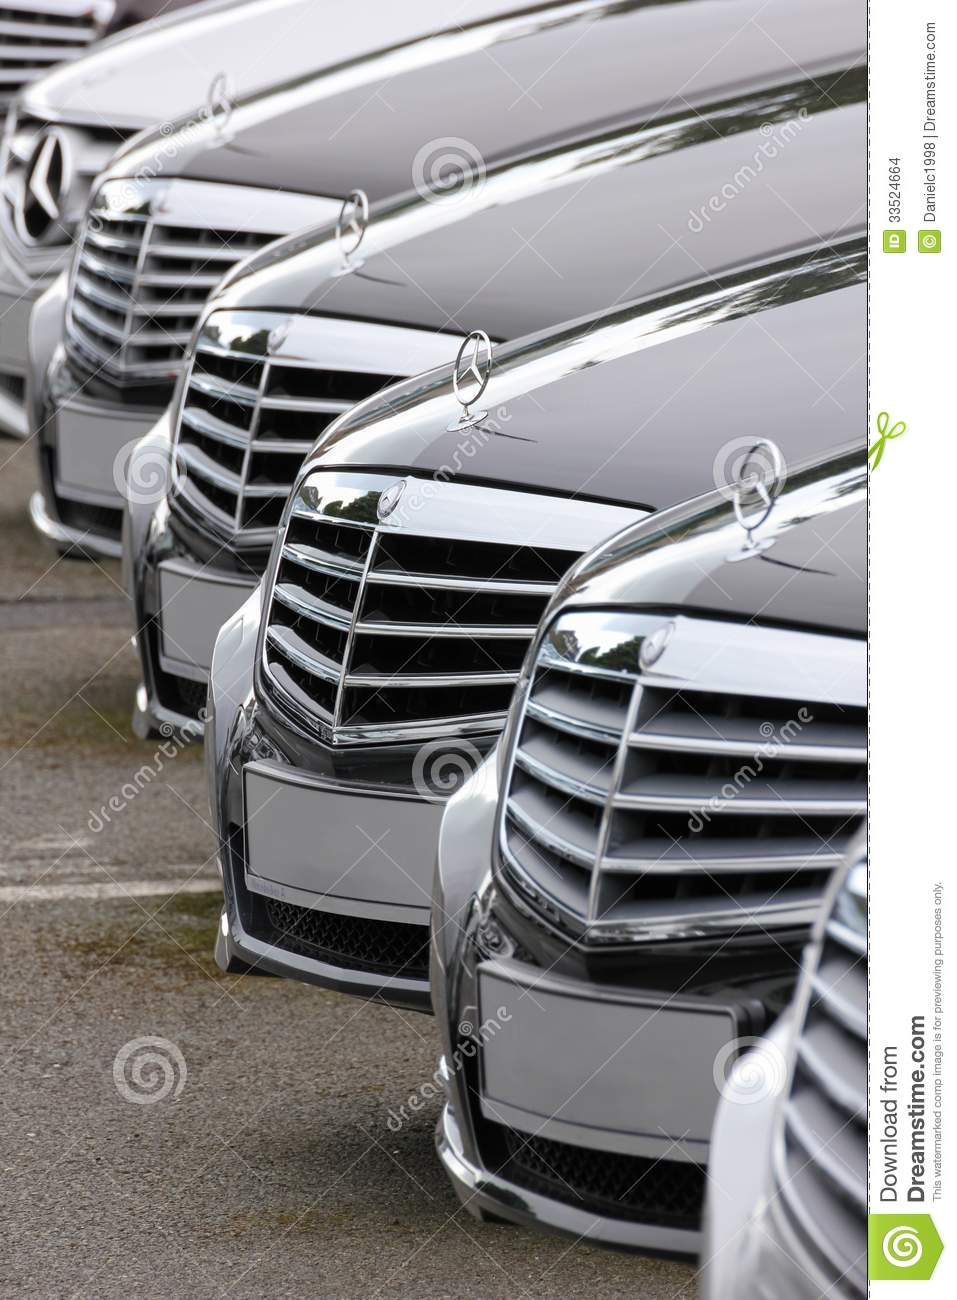 Mercedes Benz cars lined up